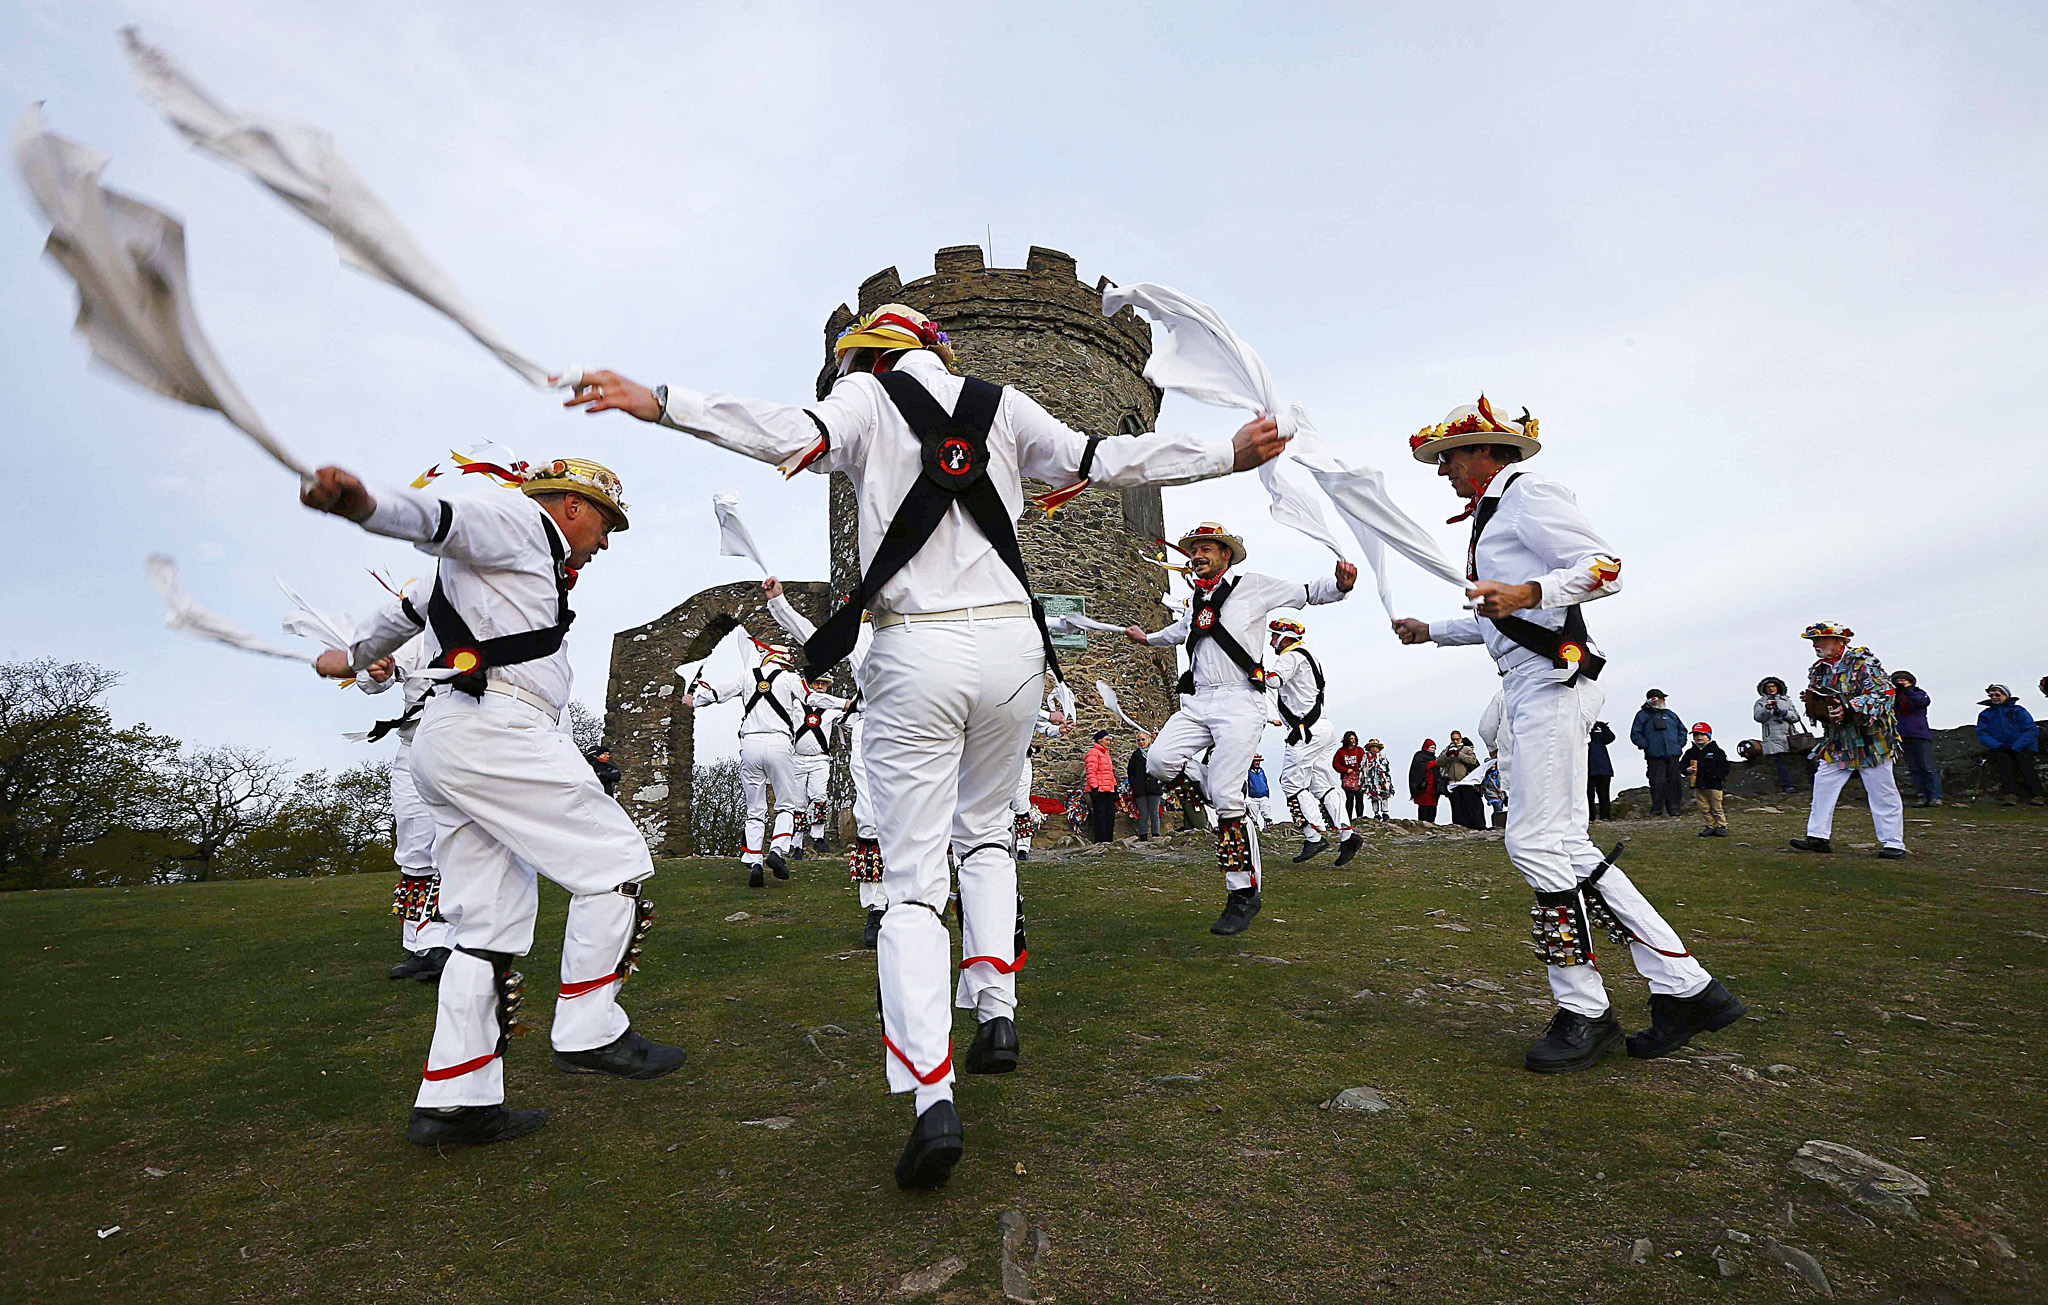 Leicester Morrismen dance during May Day celebrations at Bradgate Park in Newtown Linford...Leicester Morrismen dance during May Day celebrations at Bradgate Park in Newtown Linford, Britain May 1, 2015. The May Day Morris celebration is a traditional rite thought to be connected to changing seasons and fertility.  REUTERS/Darren Staples